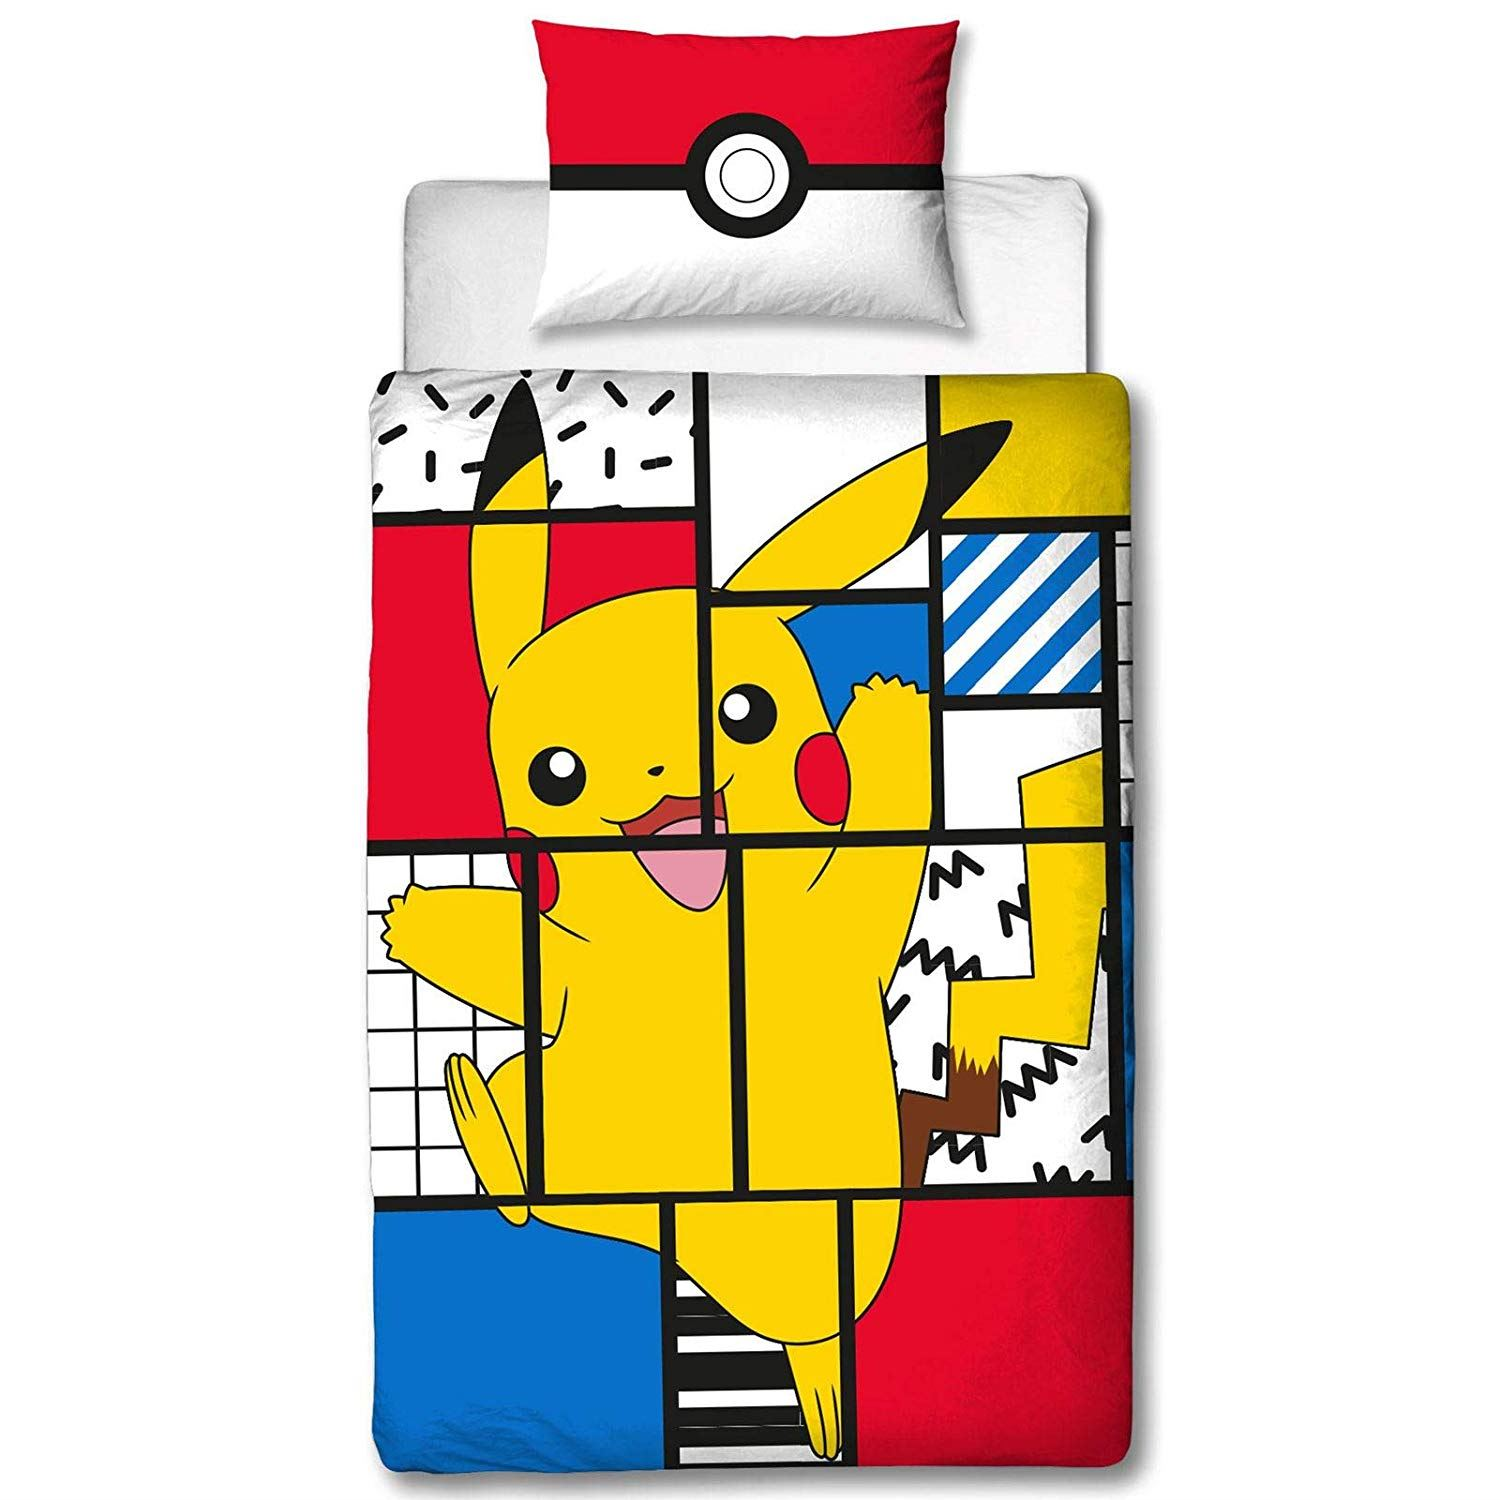 Official-Pokemon-Licensed-Duvet-Covers-Single-Double-Pikachu-Bedding-Gaming thumbnail 20